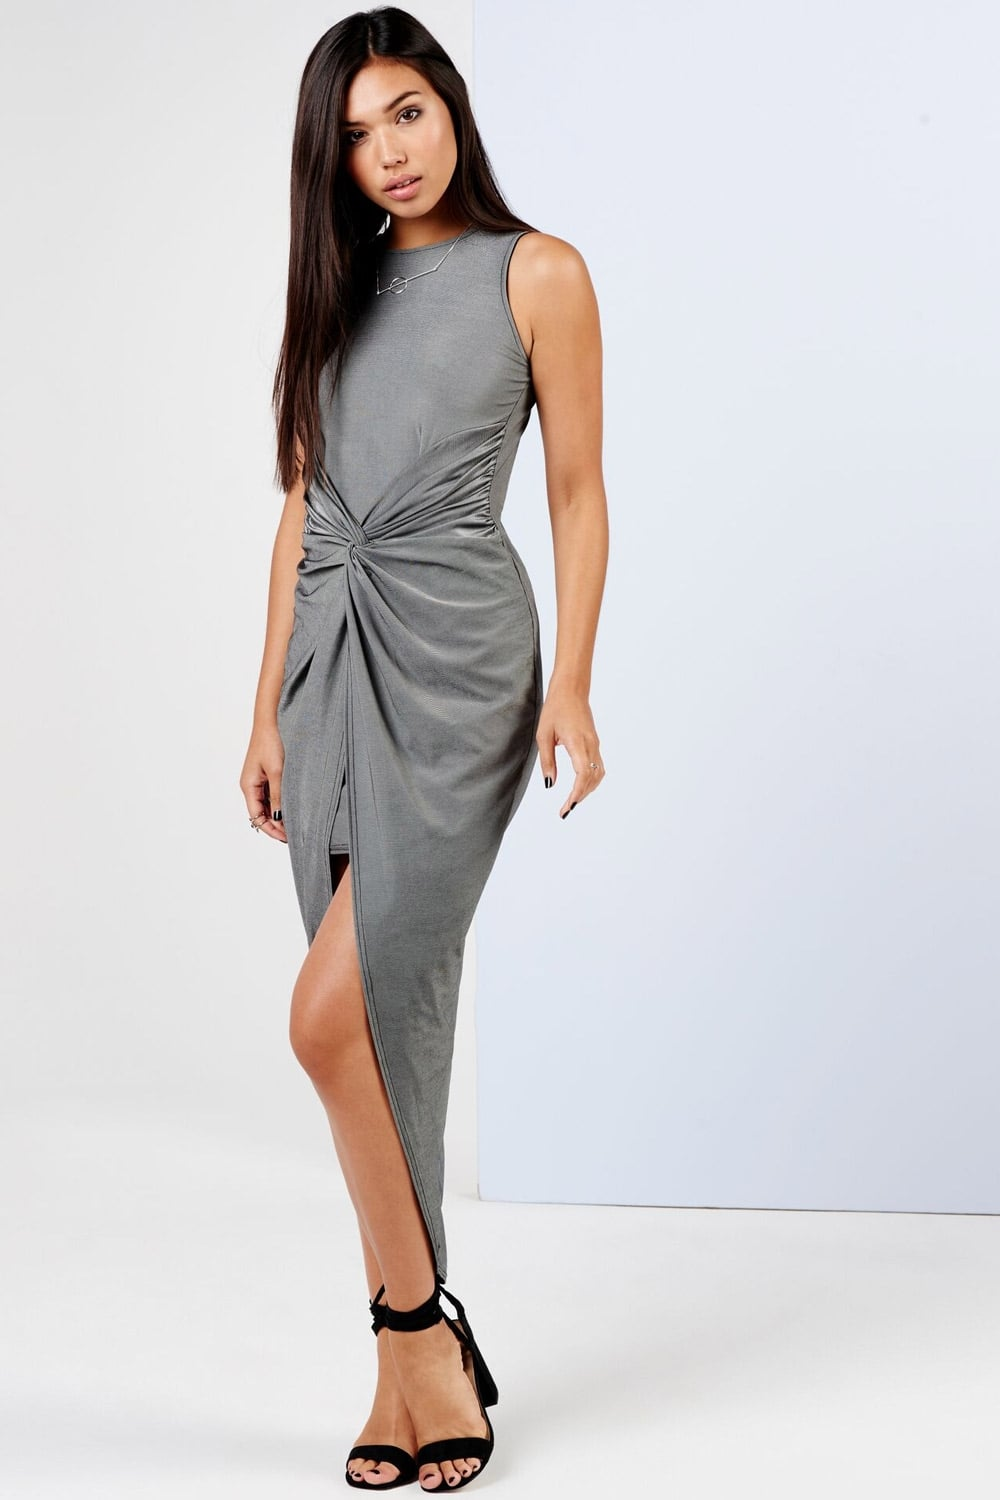 9018b6f288 Outlet Girls On Film Grey Knot Front Bodycon Dress